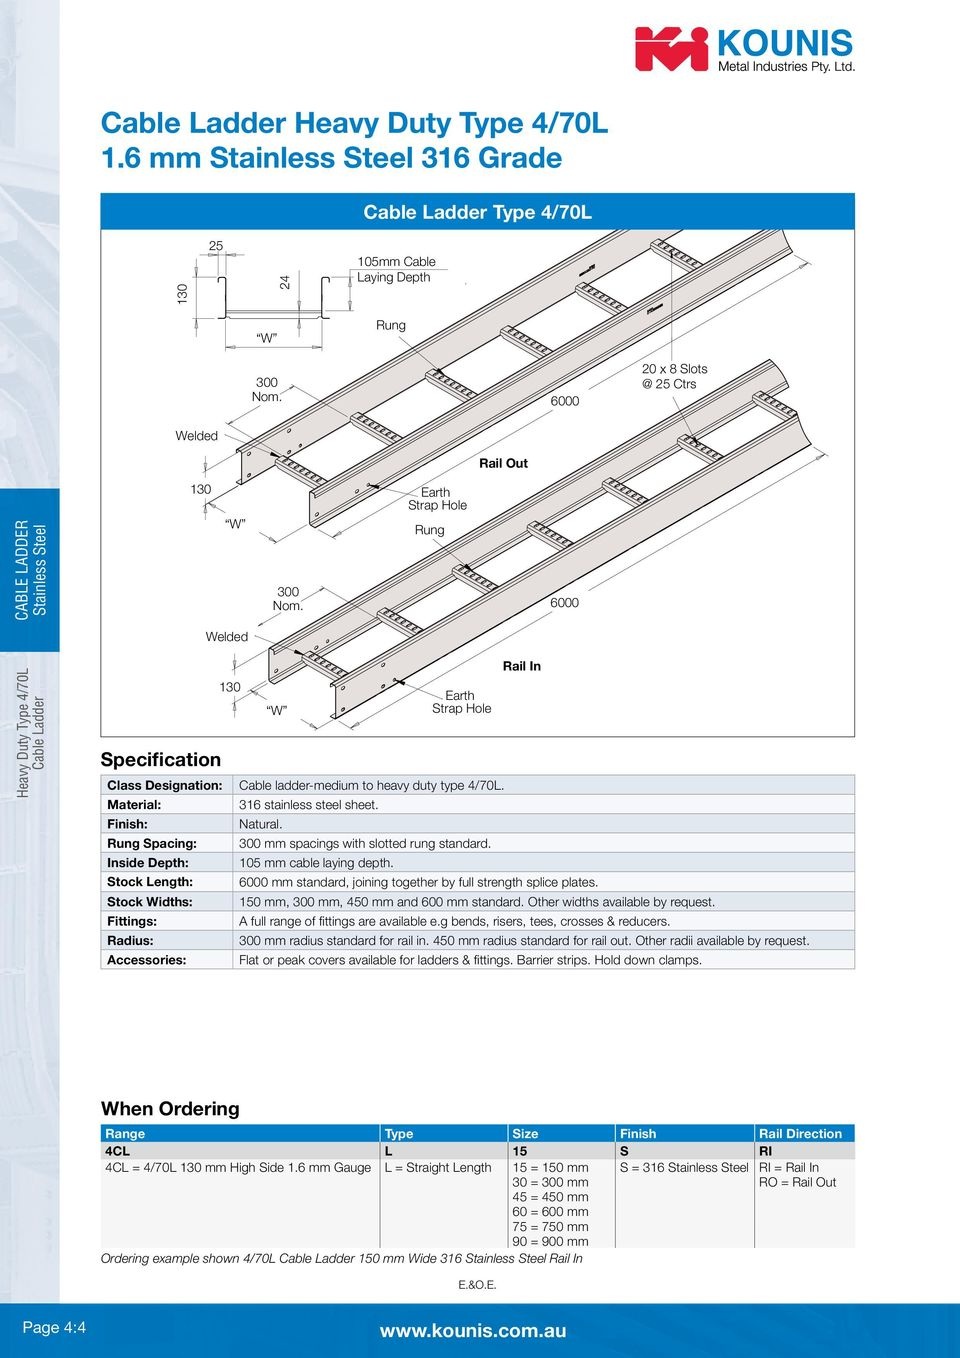 University to NEMA standards) full engineering details available. Cable ladder-medium to heavy duty type 4/70L. 316 stainless steel sheet. Natural. mm spacings with slotted rung standard.